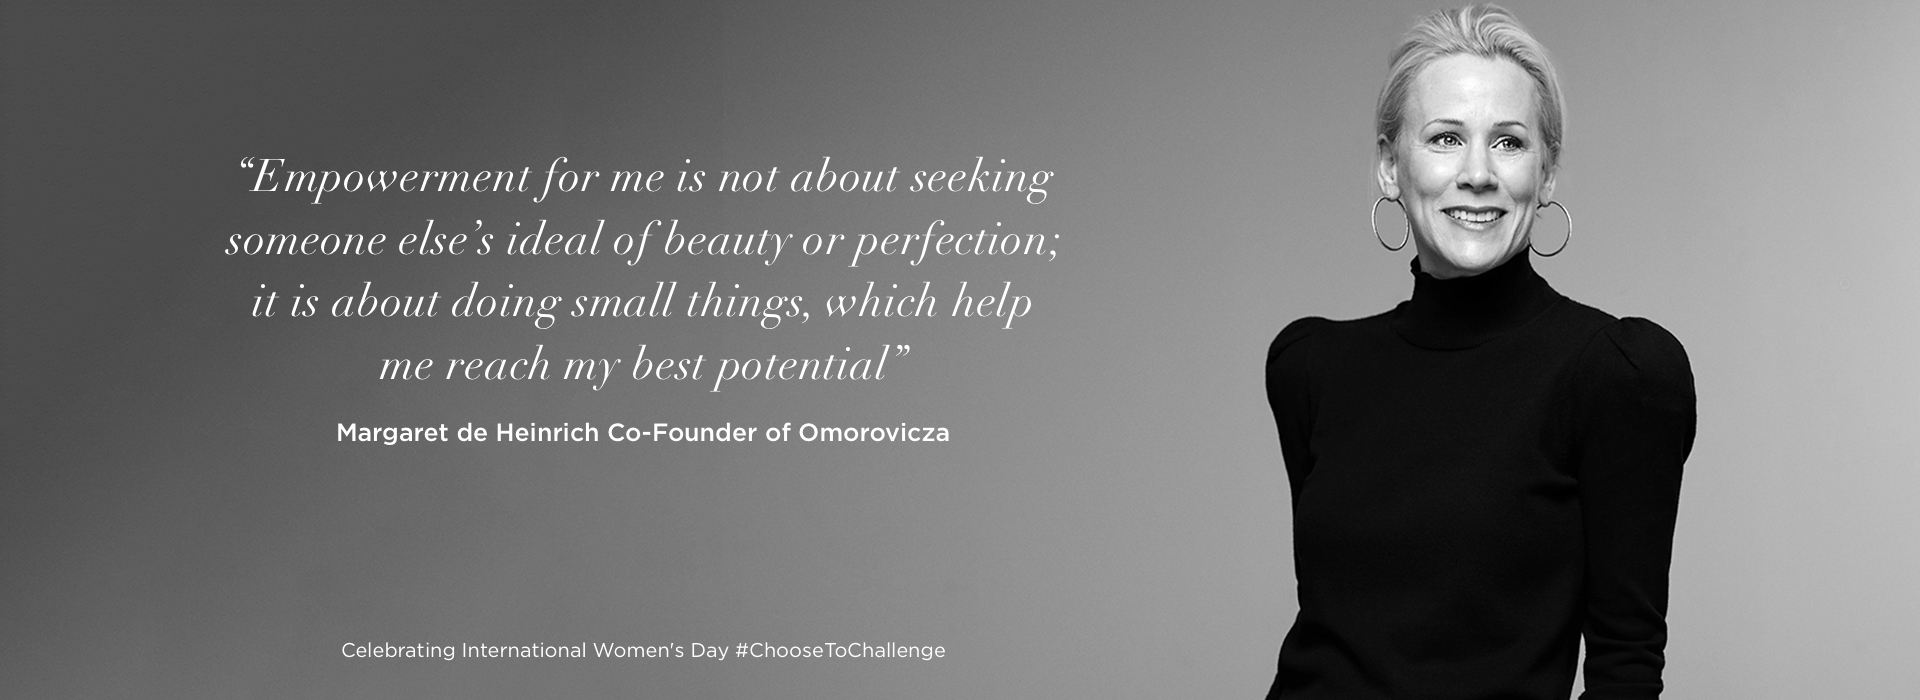 'Empowerment for me is not about seeking someone else's ideal of beauty or perfection; it is about doing small things, which help me reach my best potential'   Margaret de Heinrich Co-Founder of Omorovicza